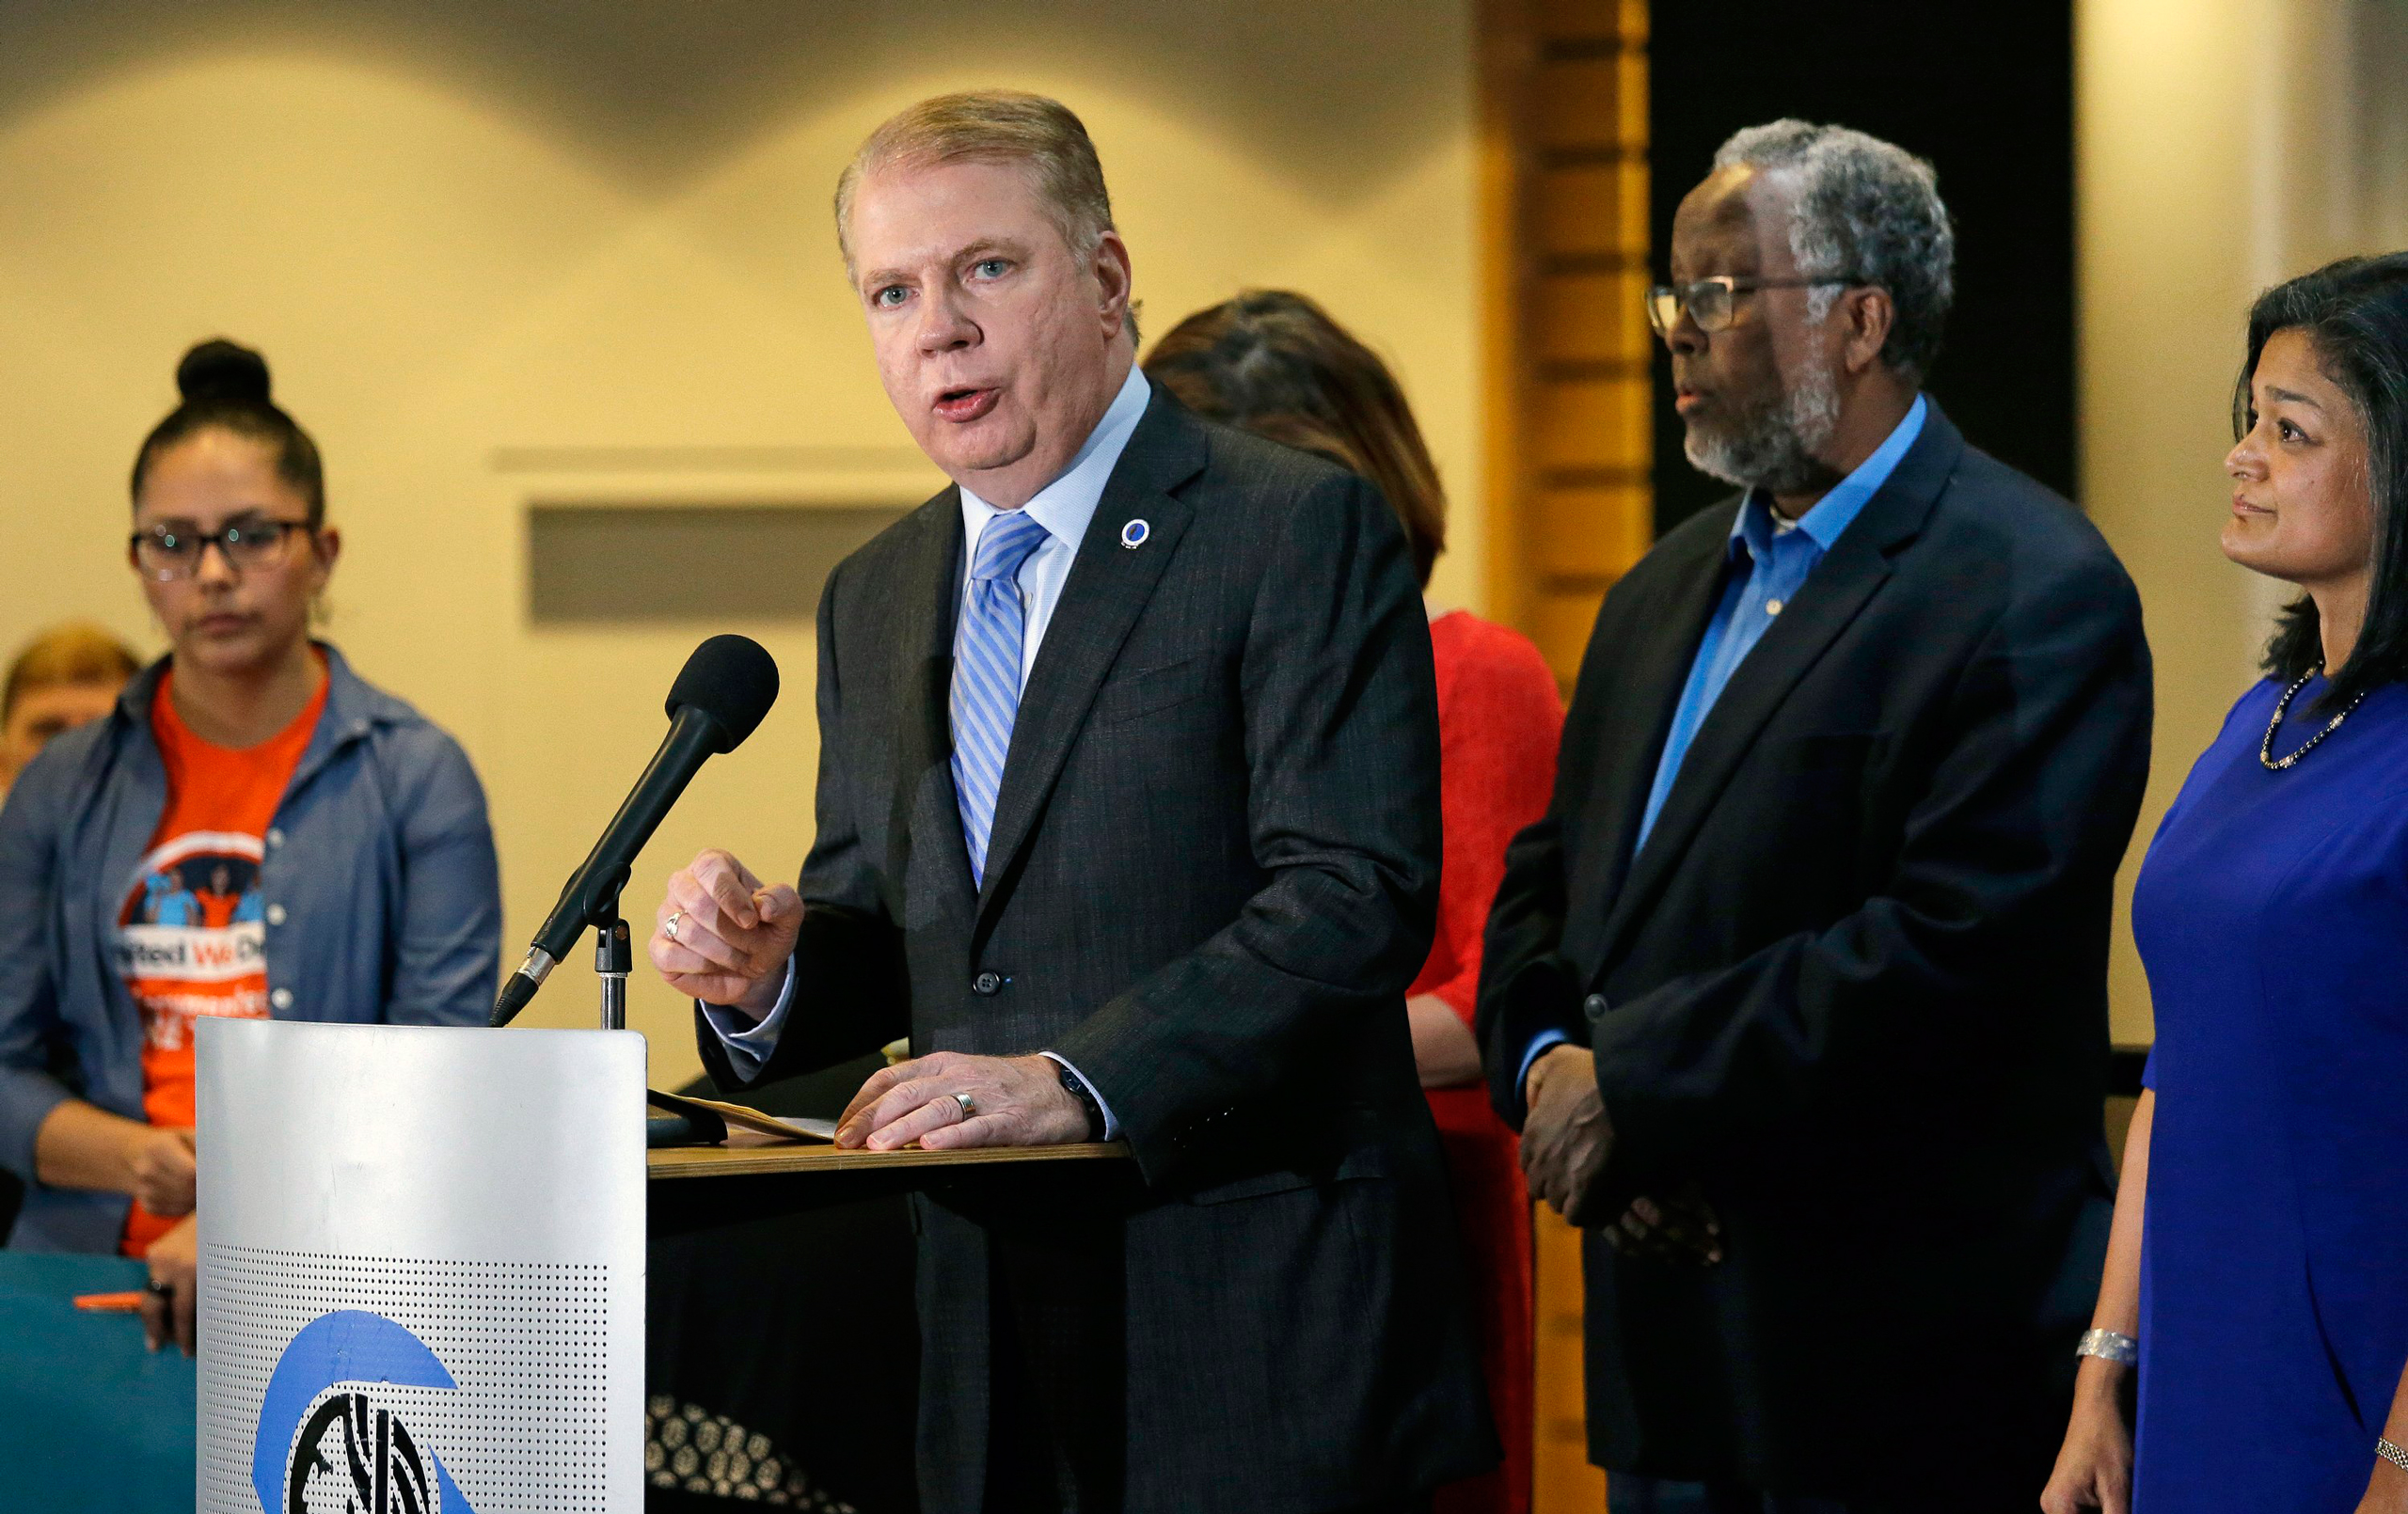 Seattle Mayor Ed Murray, second left, speaks at a post-election event of elected officials and community leaders at City Hall in Seattle on Nov. 9, 2016.